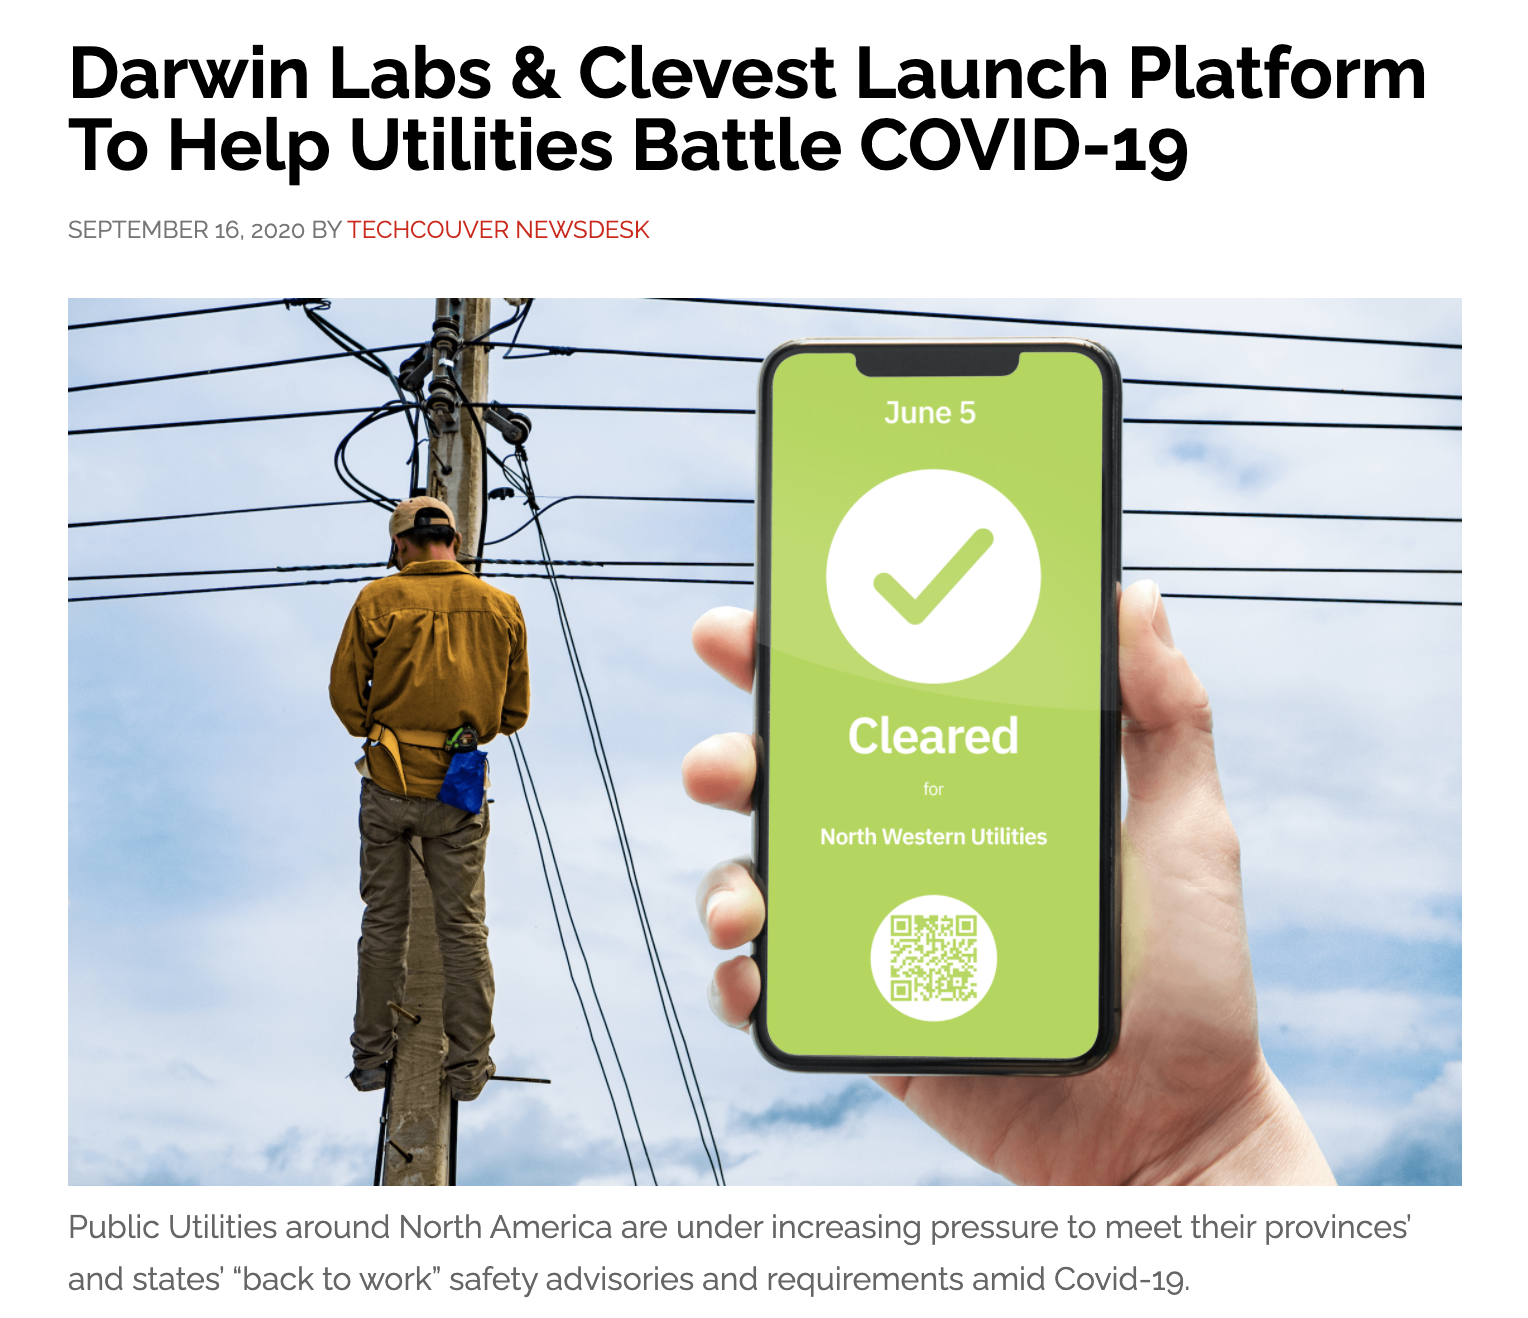 Darwin Labs & Clevest Launch Platform To Help Utilities Battle COVID-19